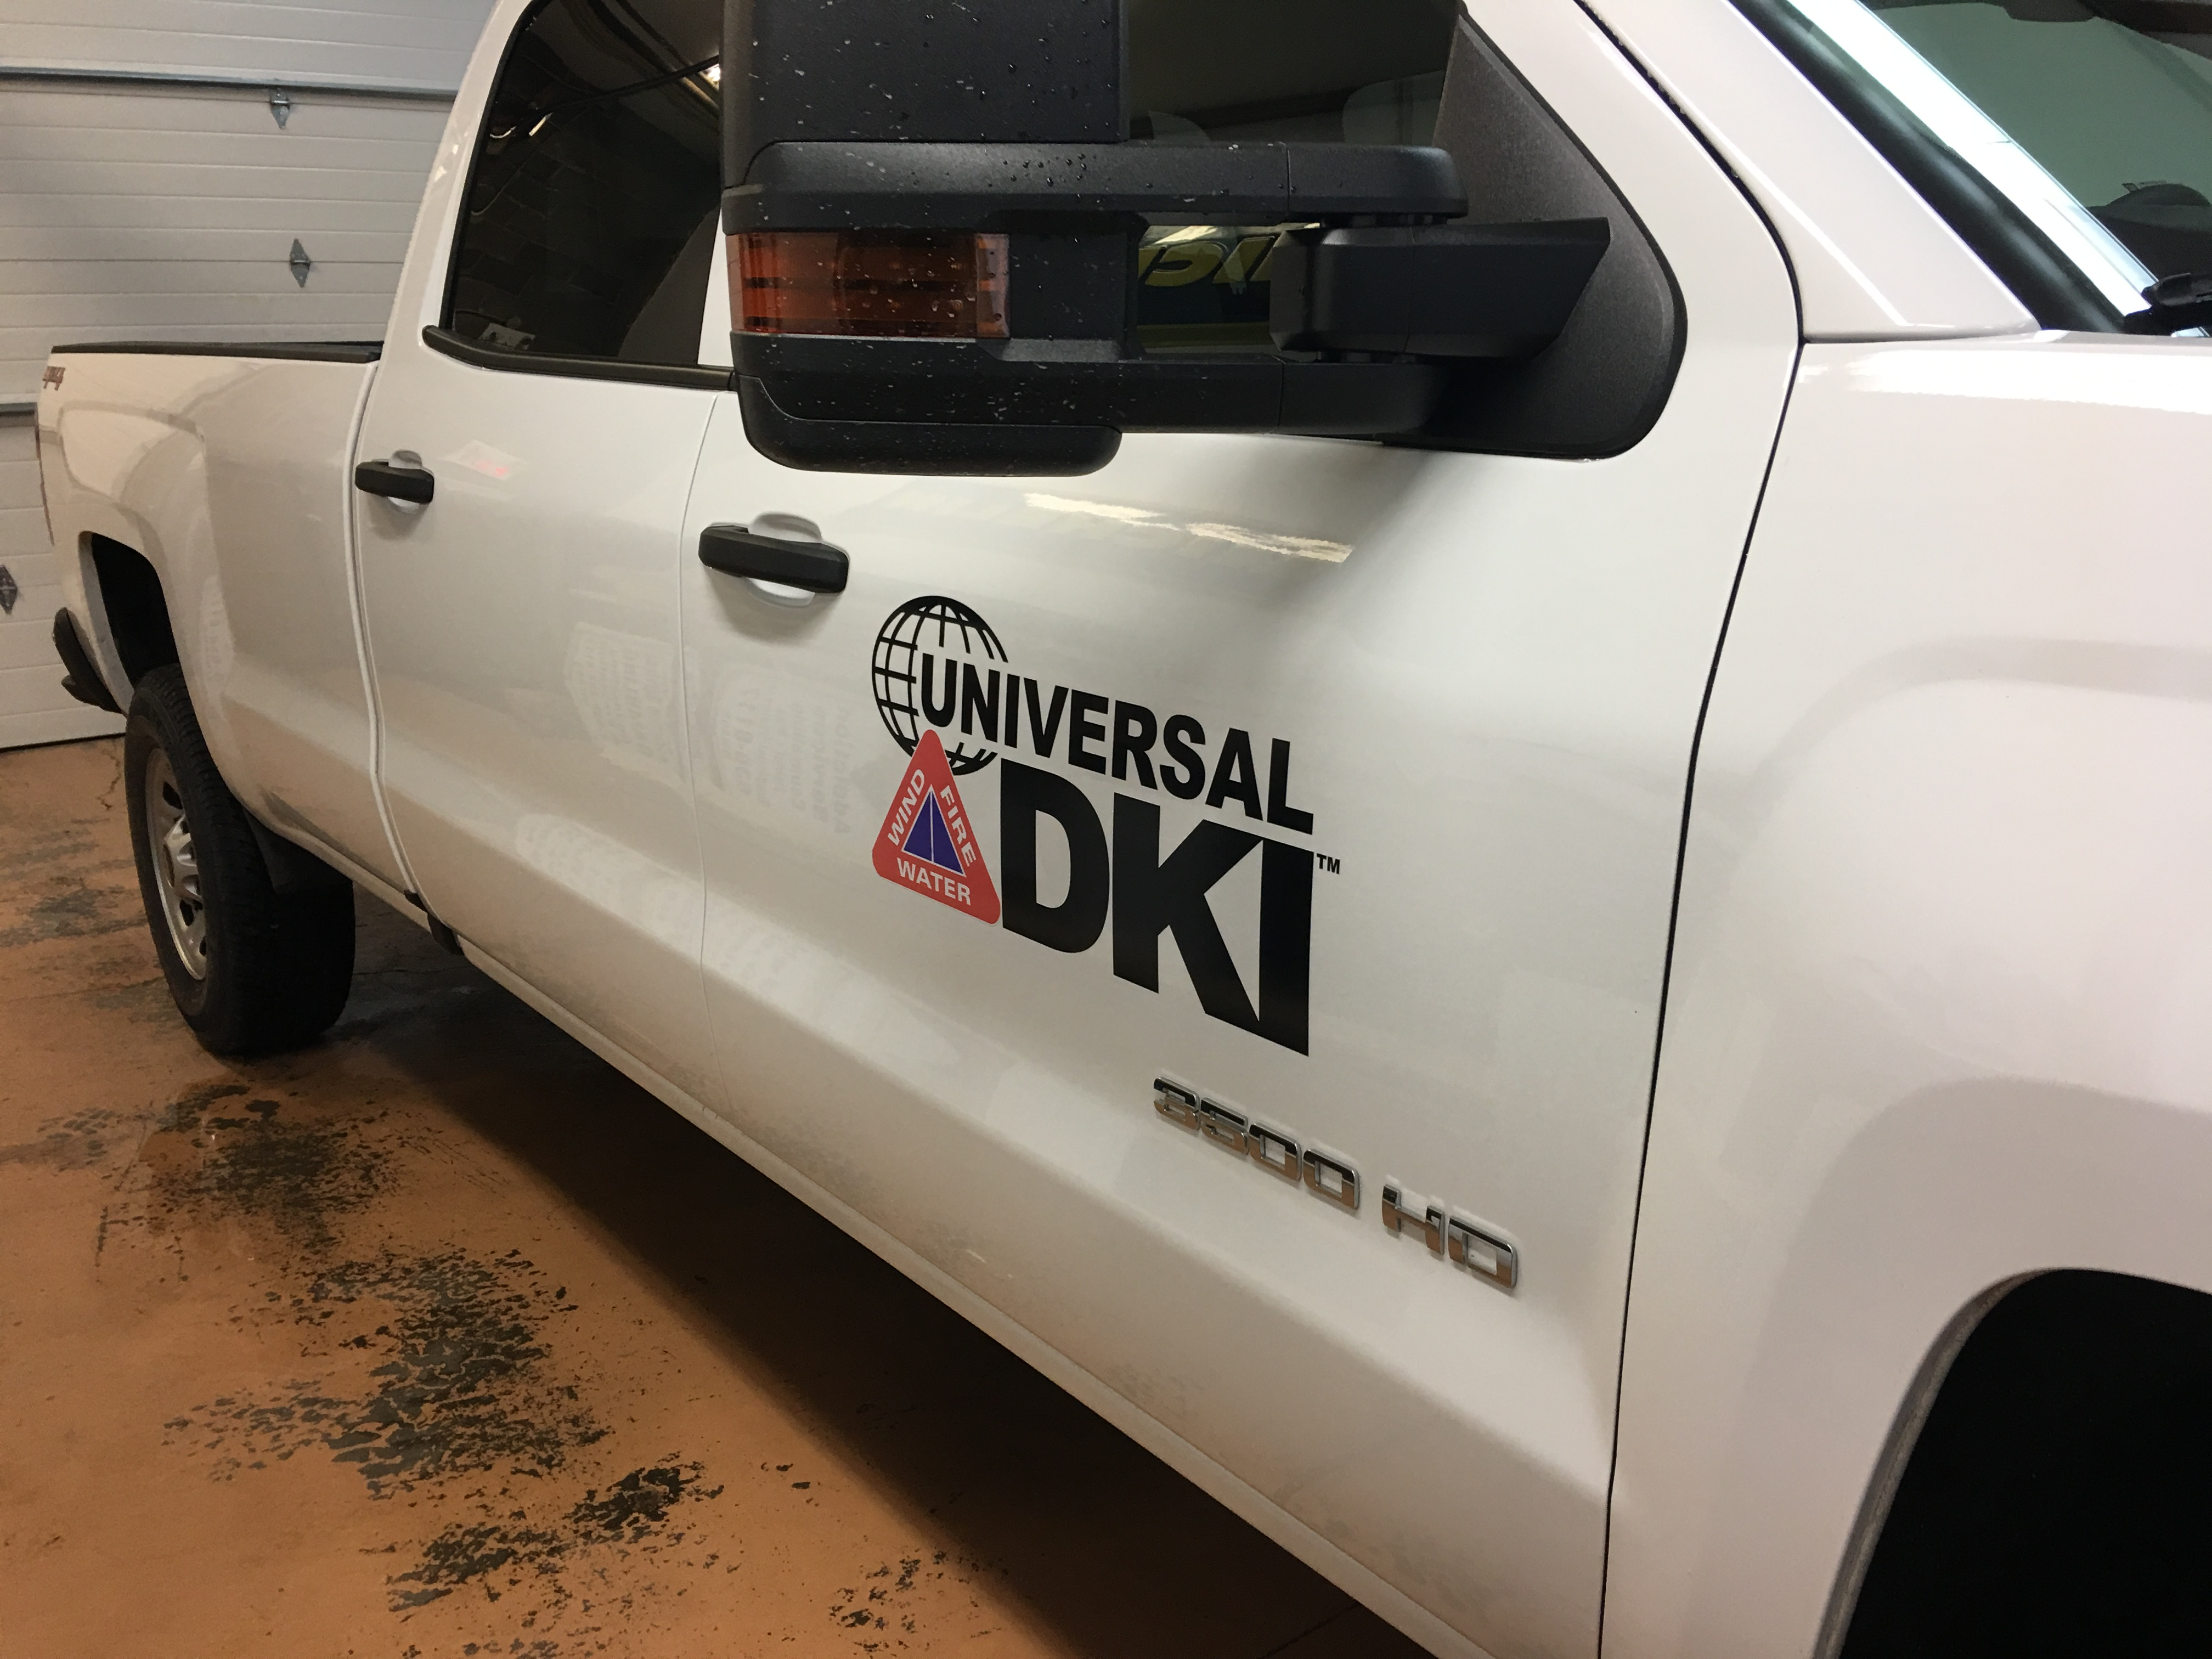 Vehicle door decal